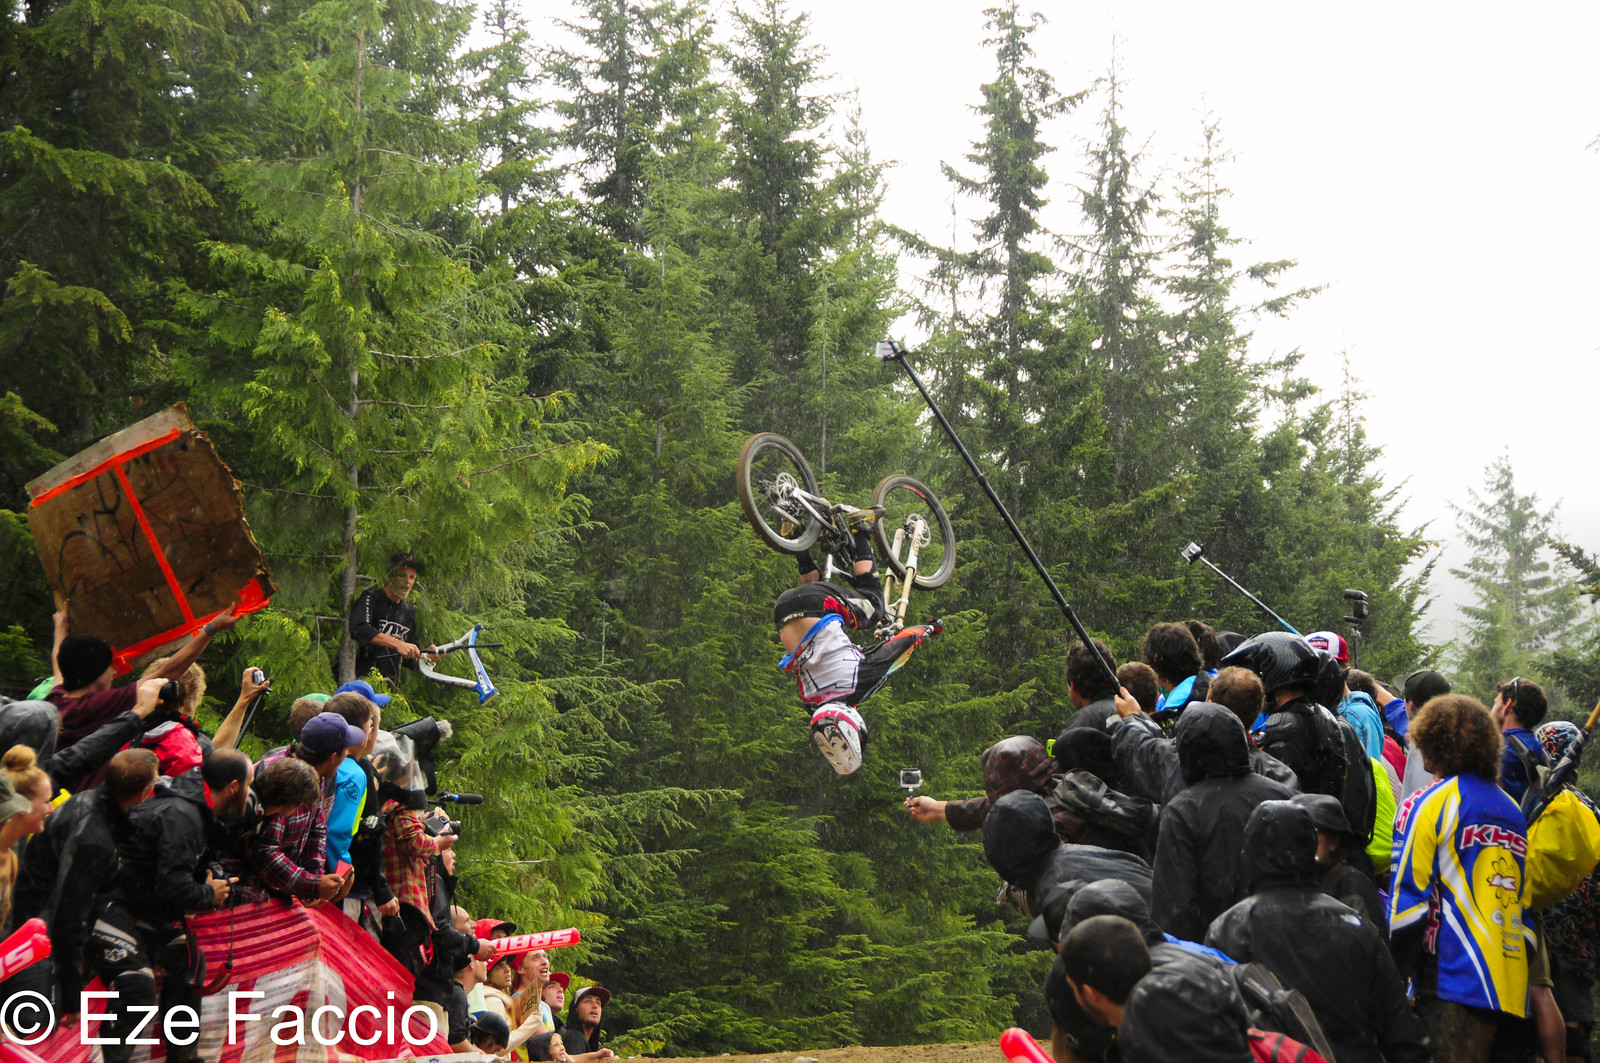 Backflip... not whip - ezefaccio - Mountain Biking Pictures - Vital MTB